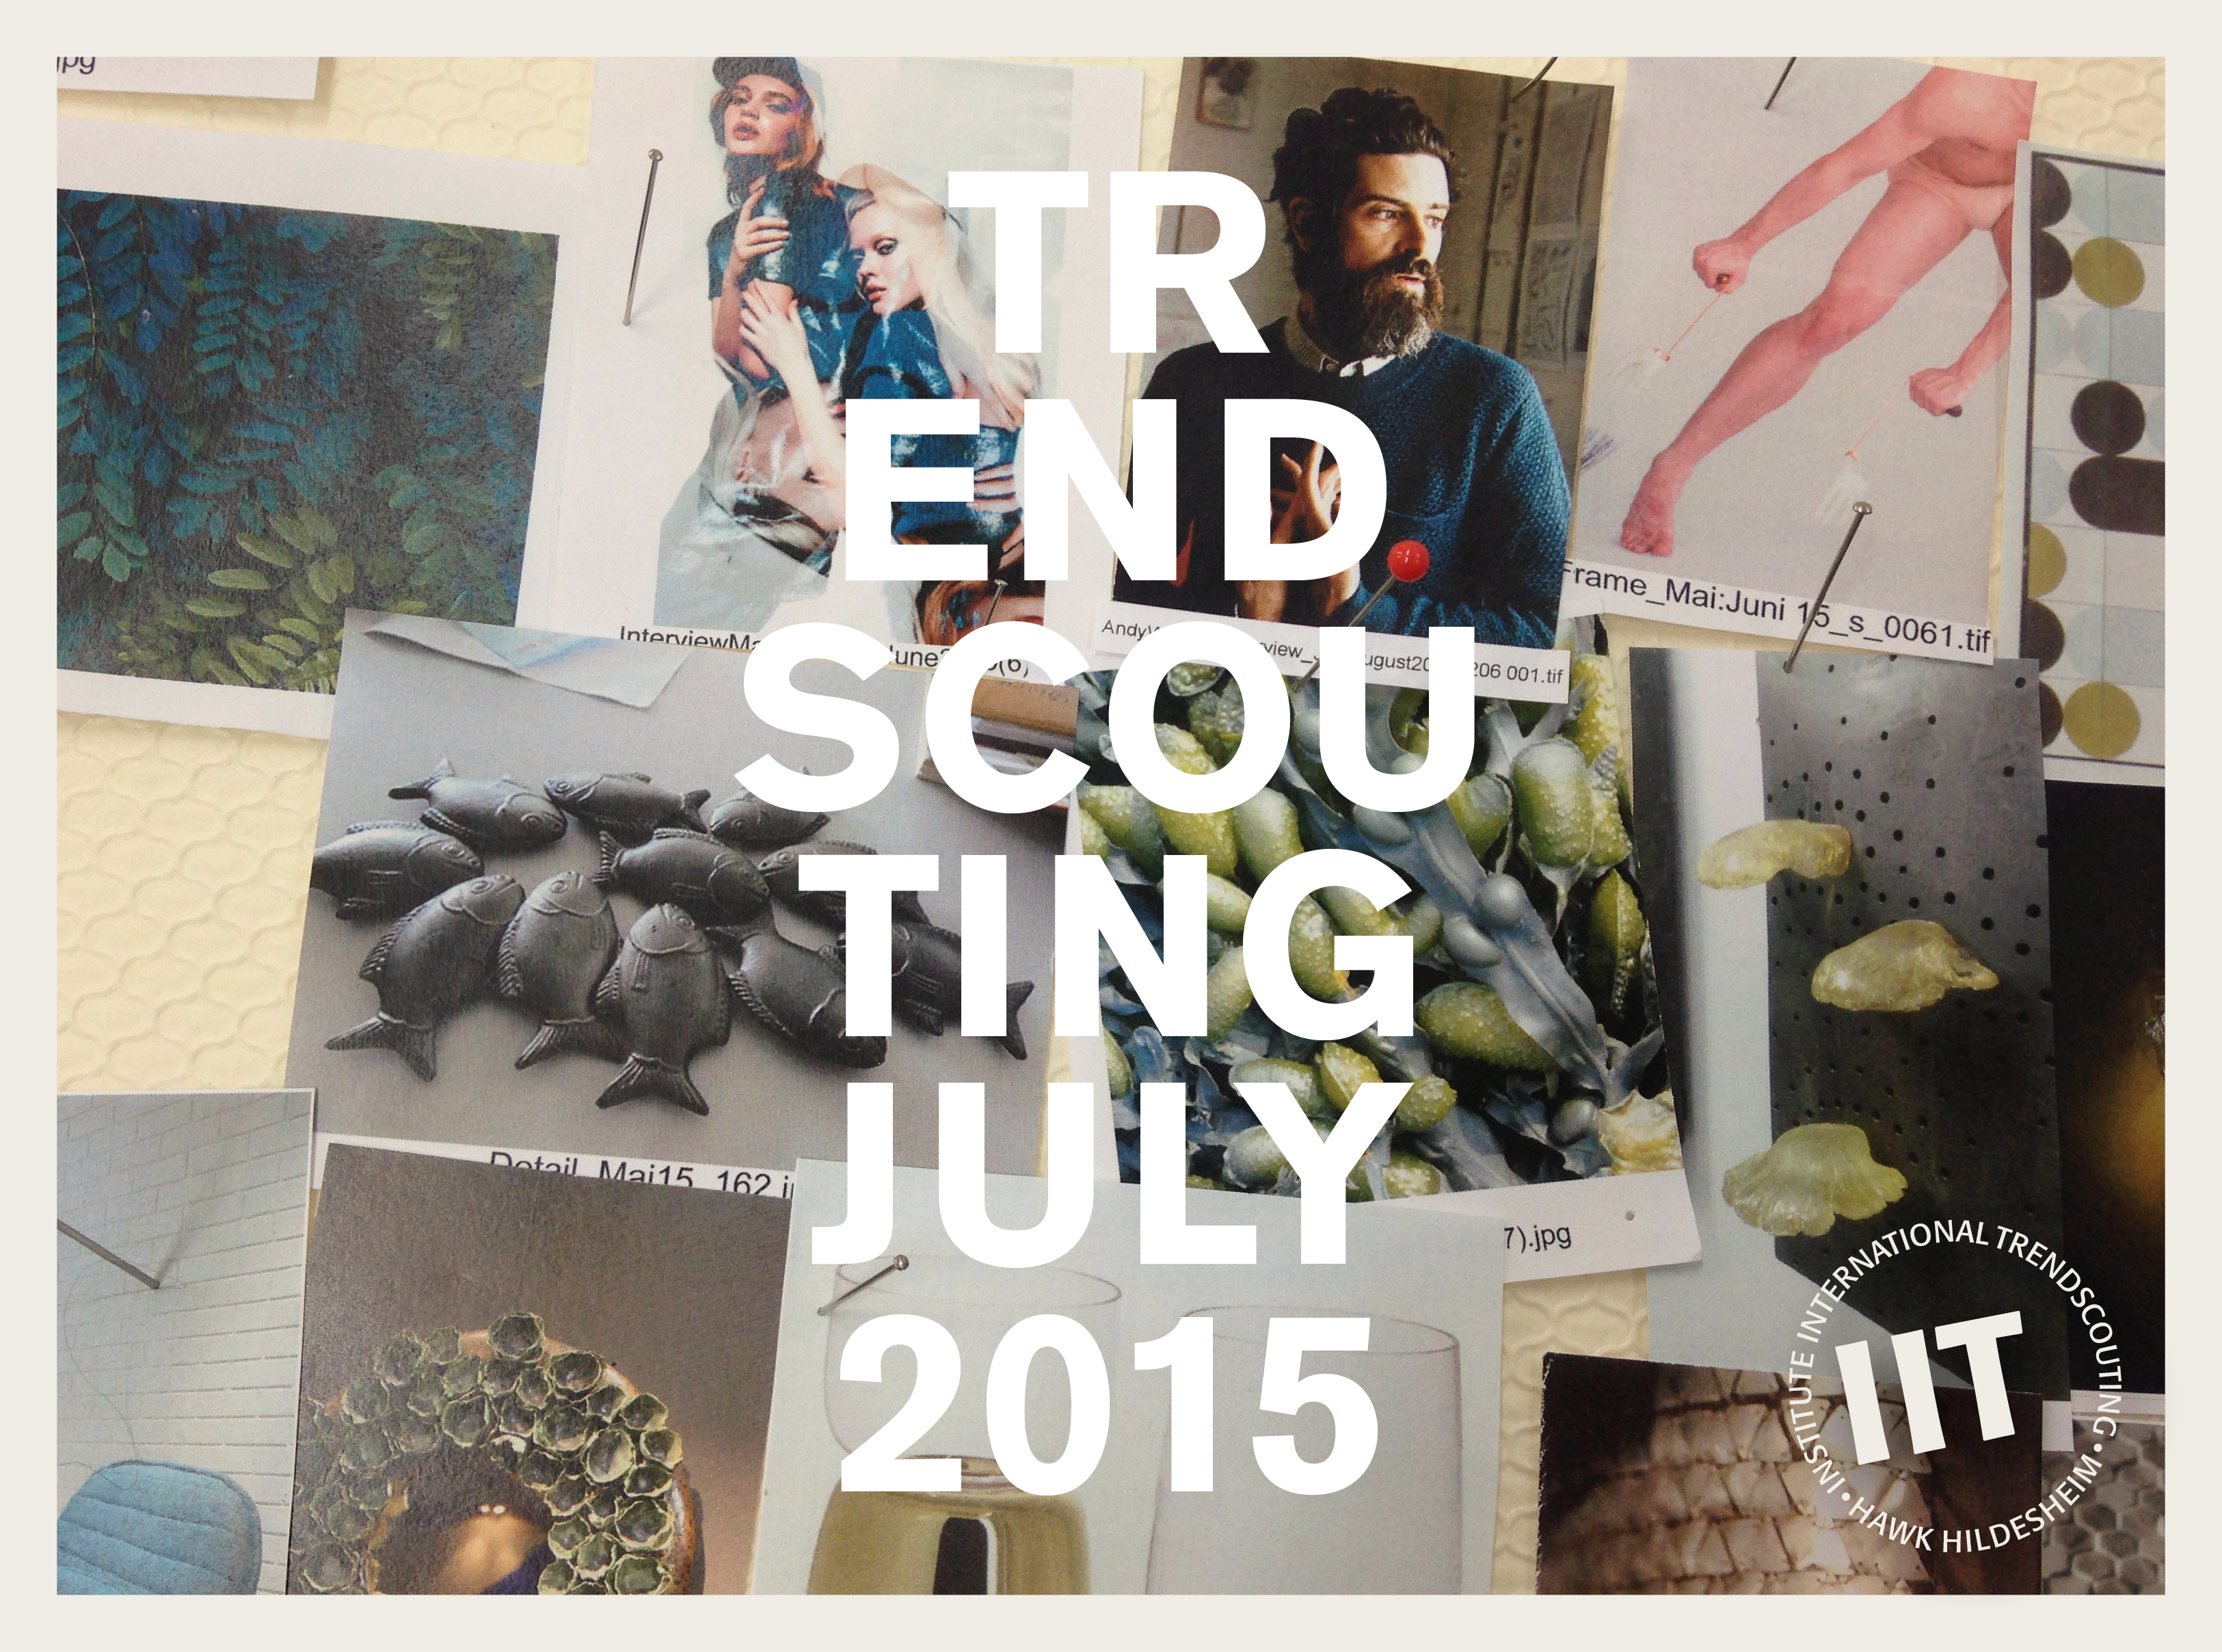 Trendscouting_2016